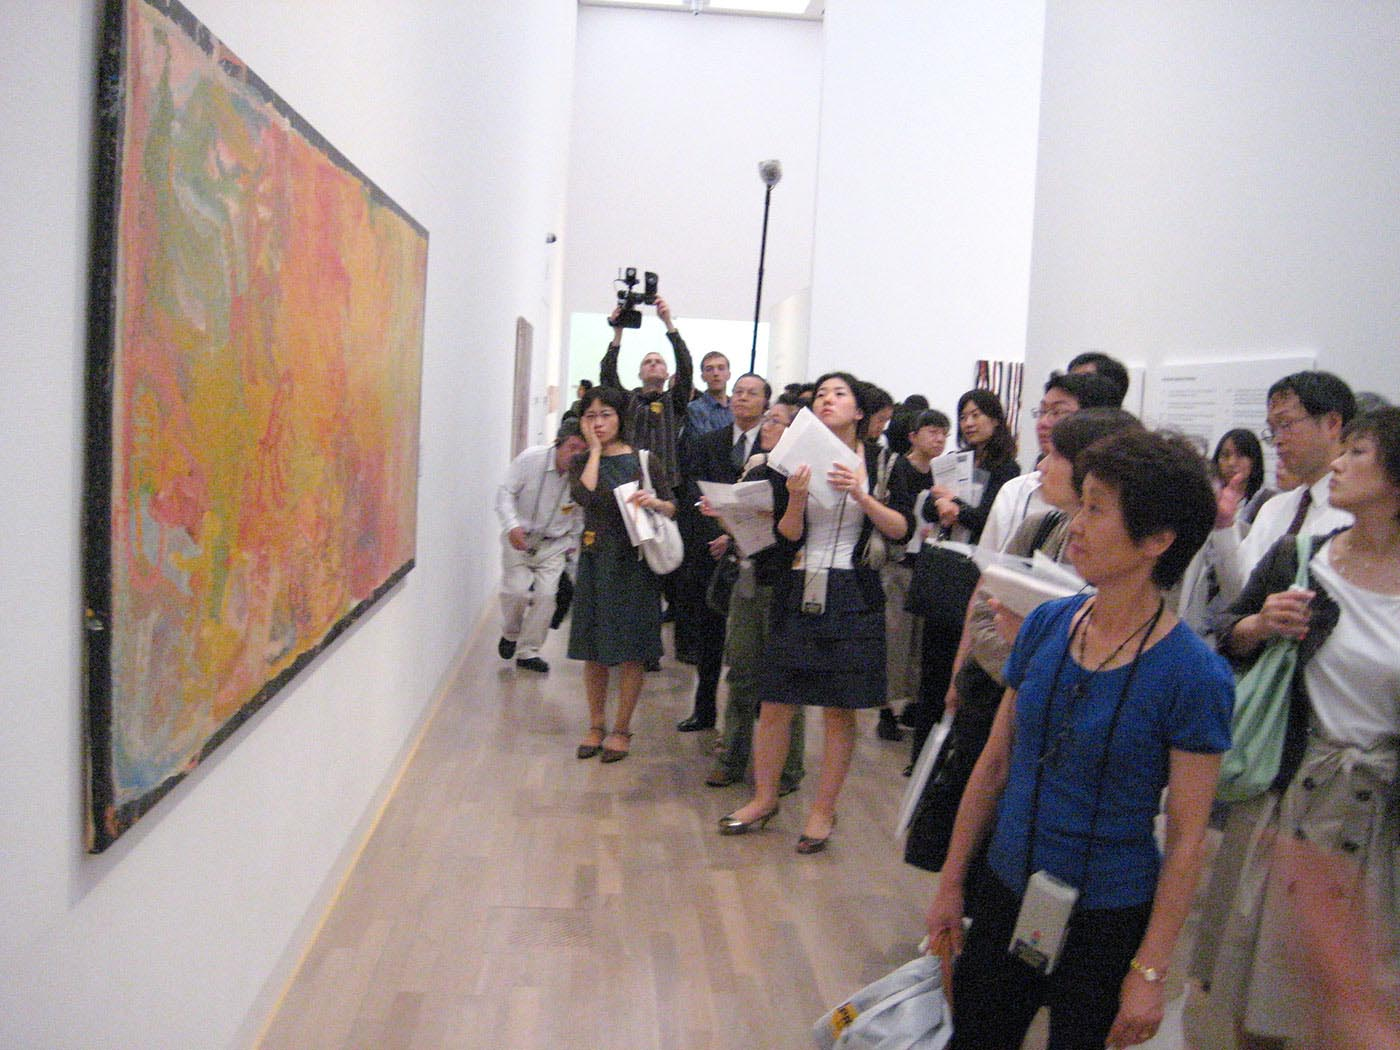 Media standing in front of a large painting. - click to view larger image